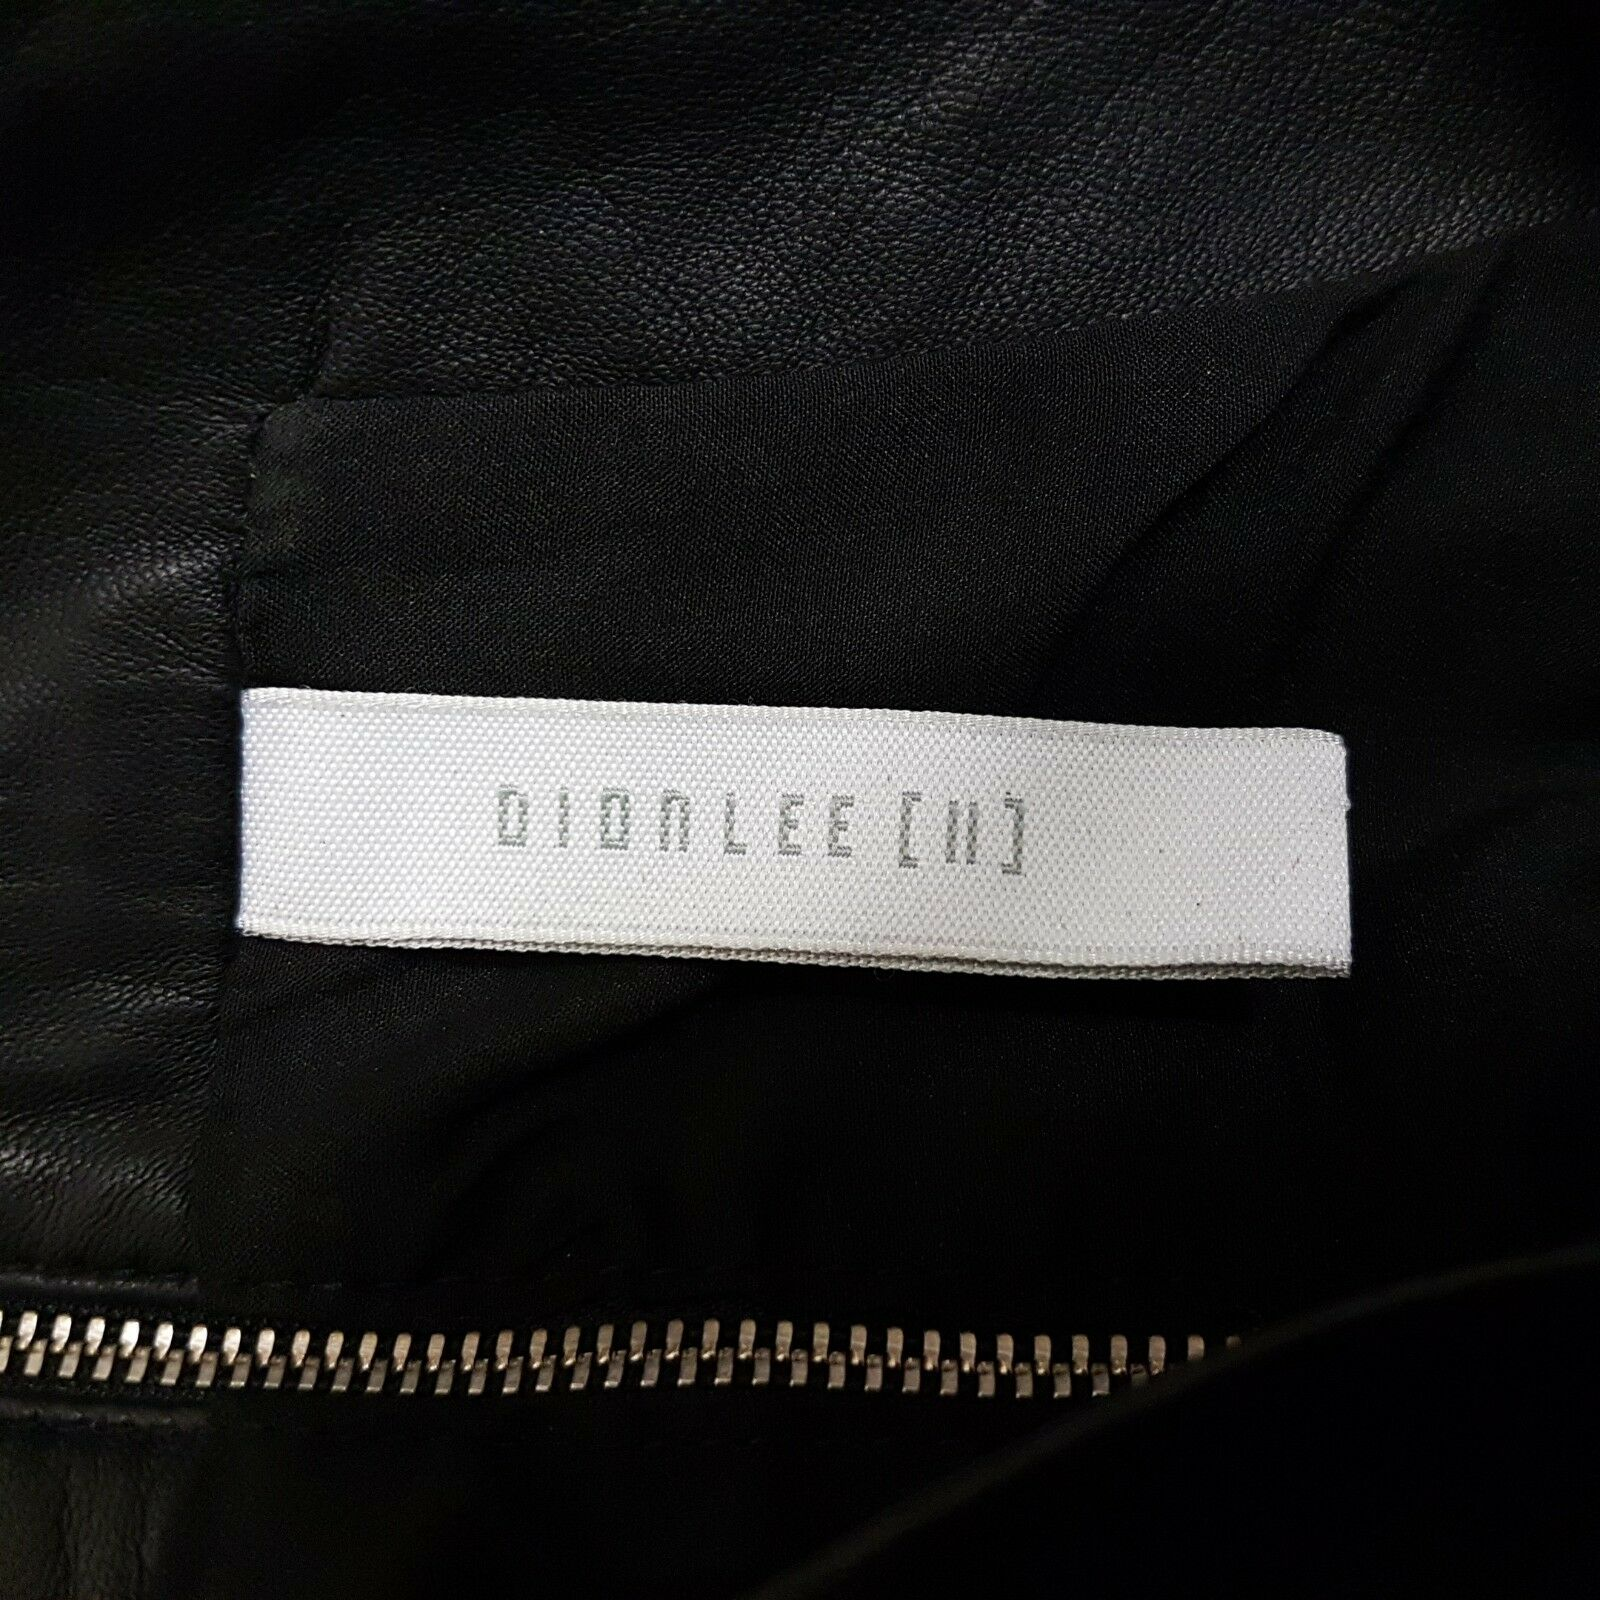 Dion Lee Pelle Ritagliata Top Party Top Top Top 2bad15